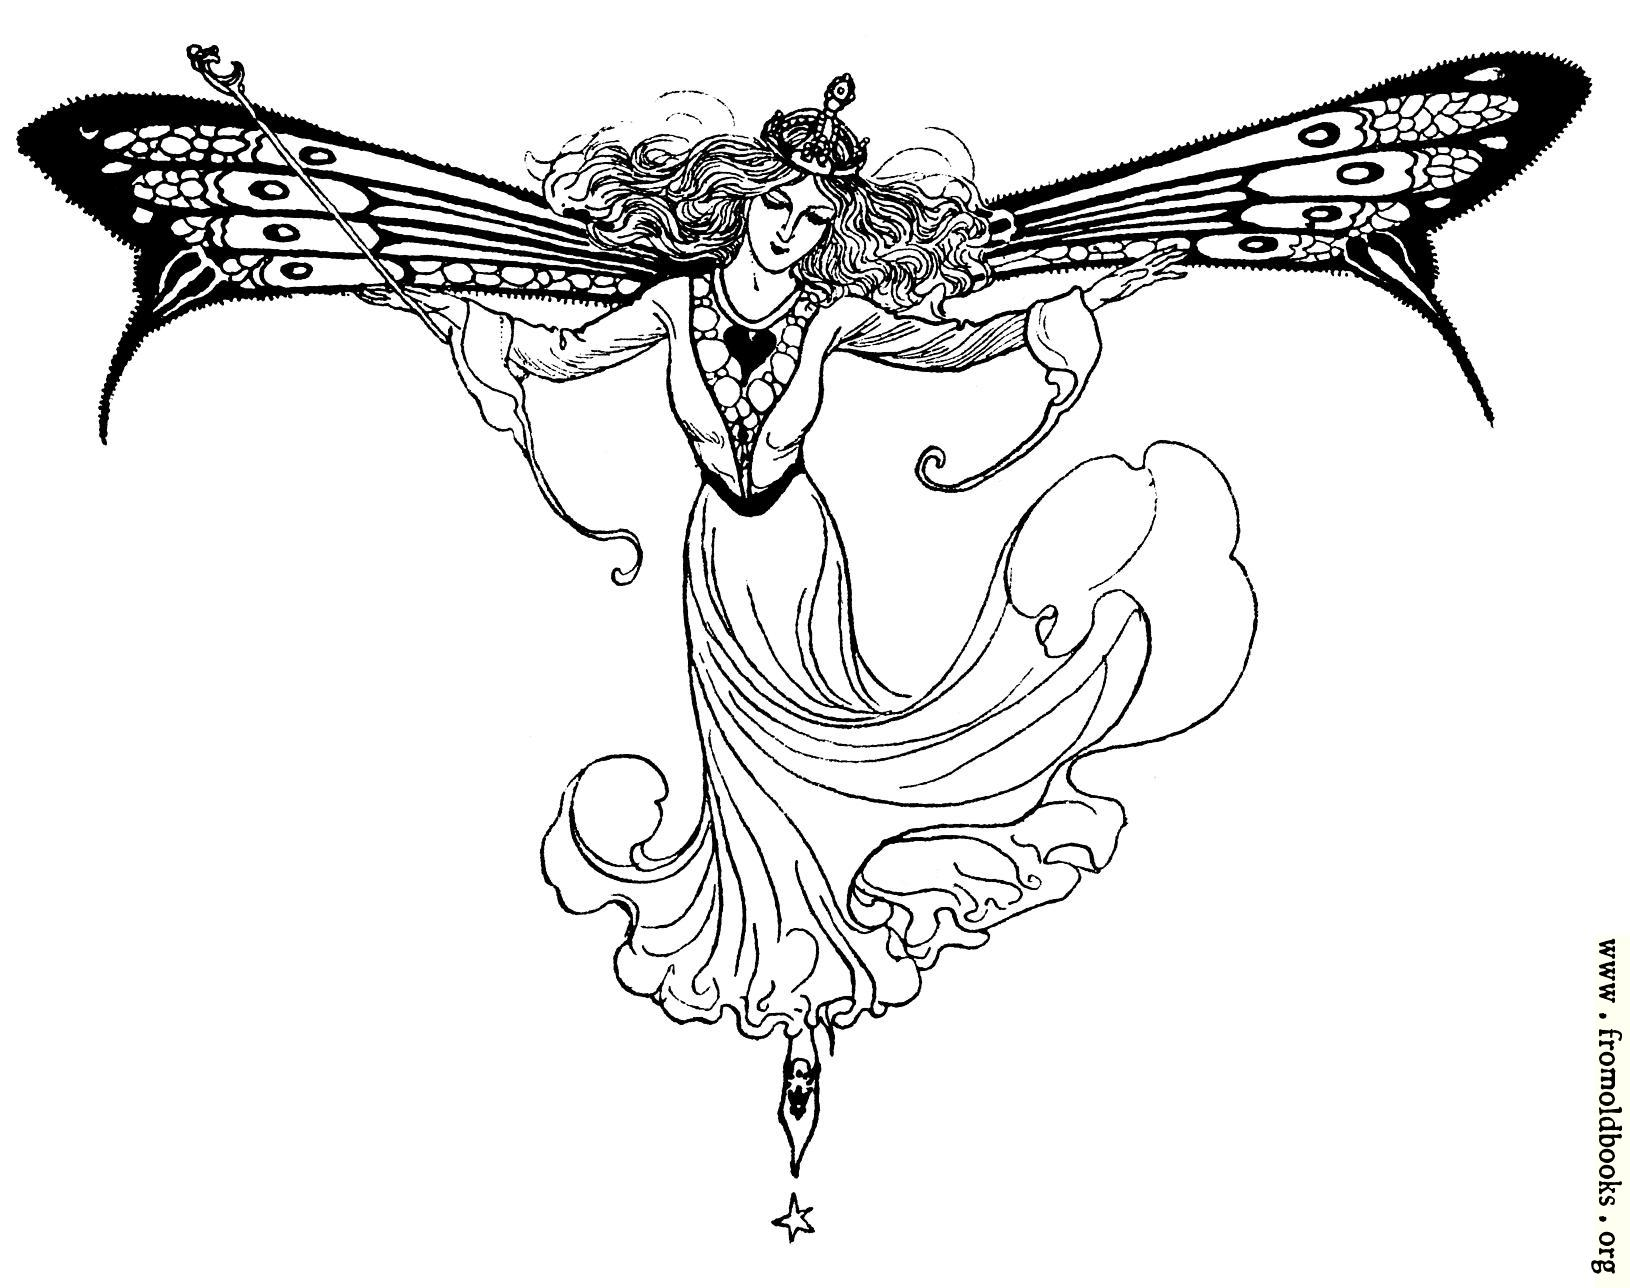 Queen Mab (version without the words)